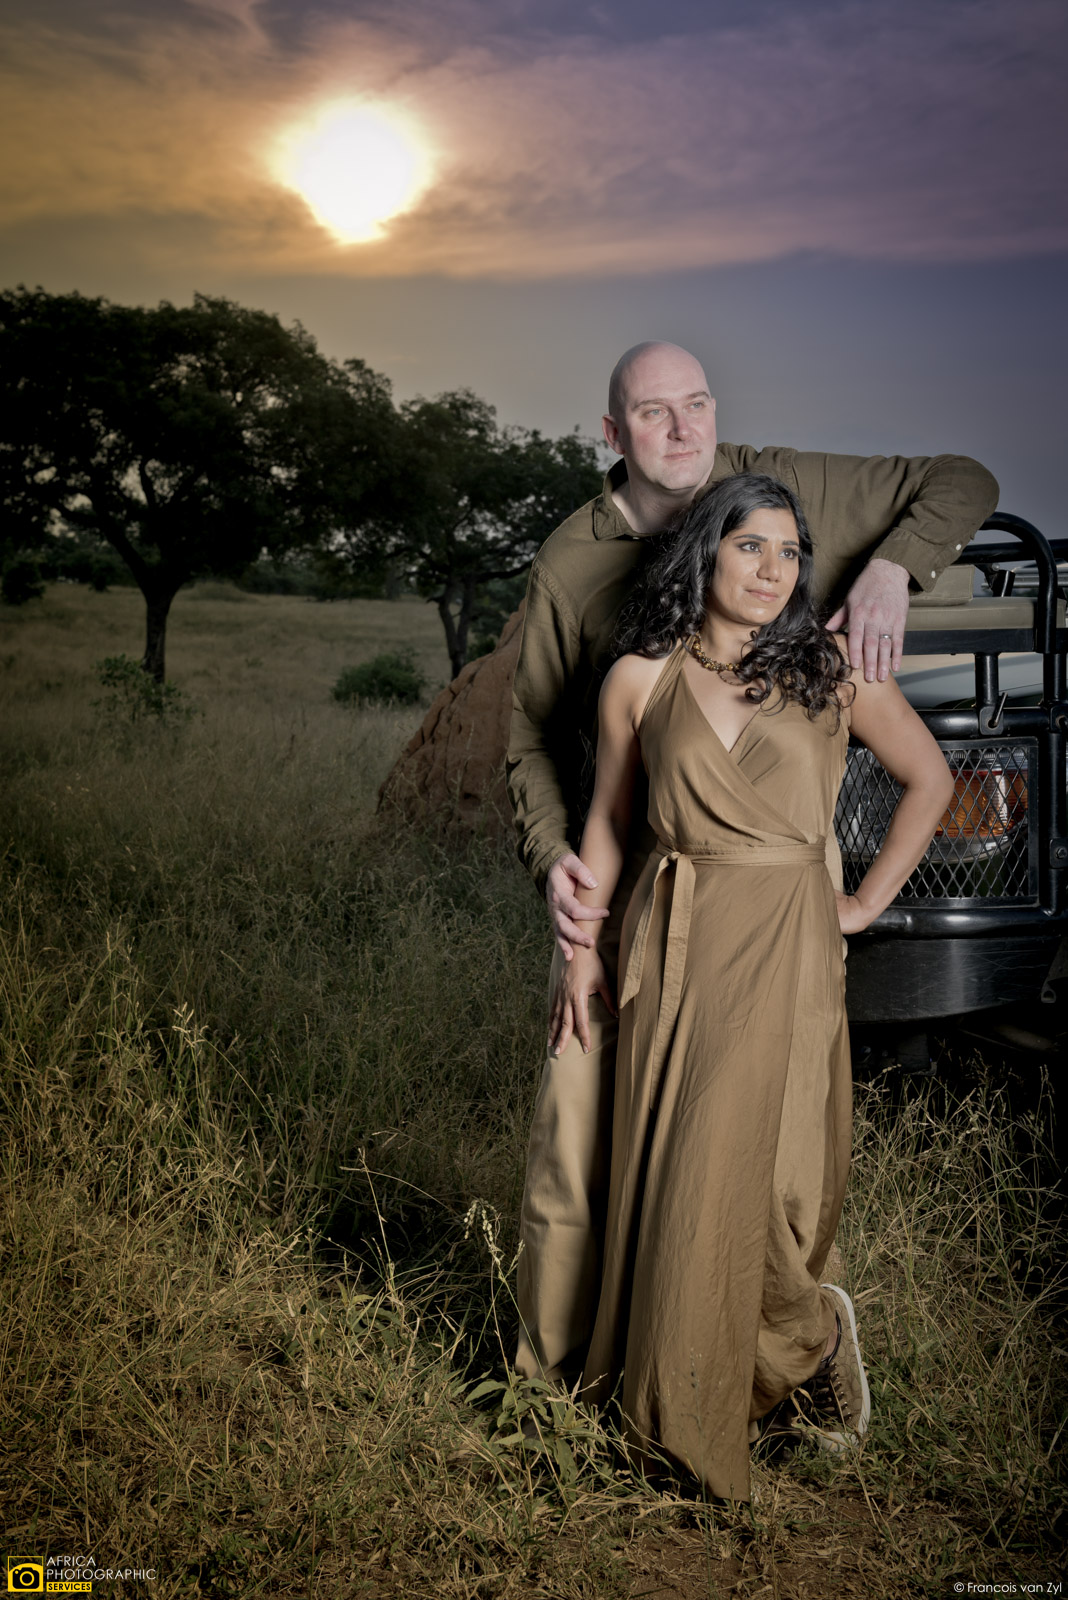 Francois van Zyl Wedding Portrait Photographer Mpumalanga South Africa  D817013 - Safari Portraiture, a behind the scenes look